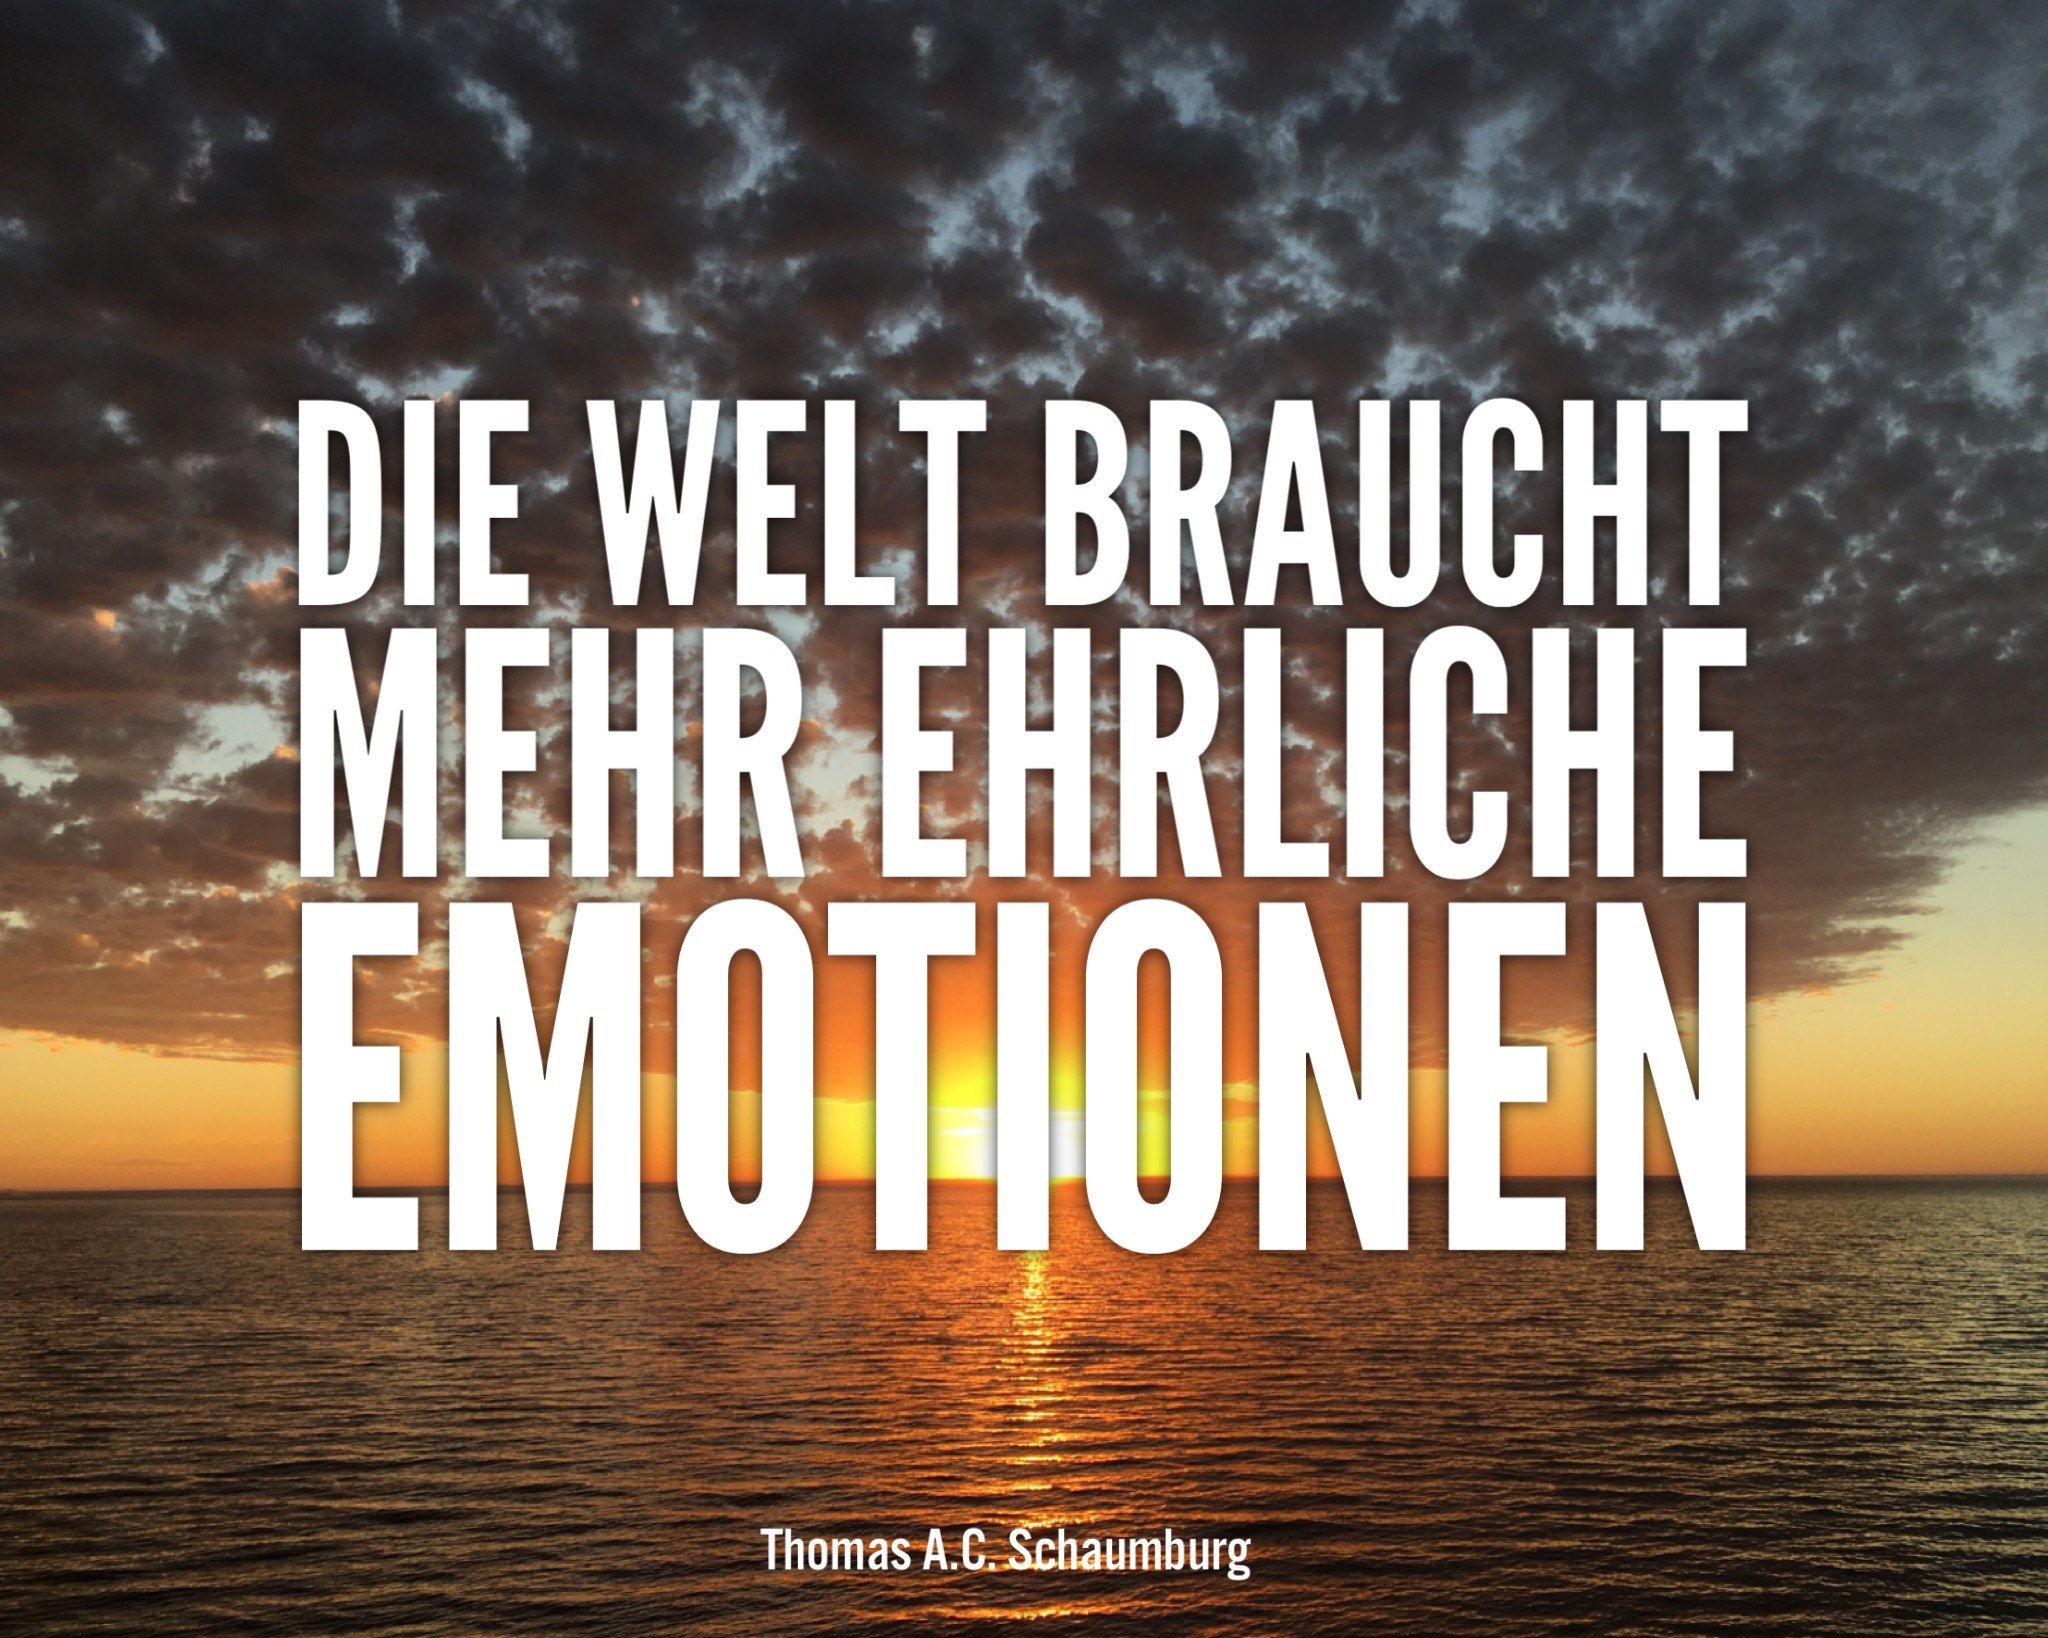 Mehr Emotion - Seminare